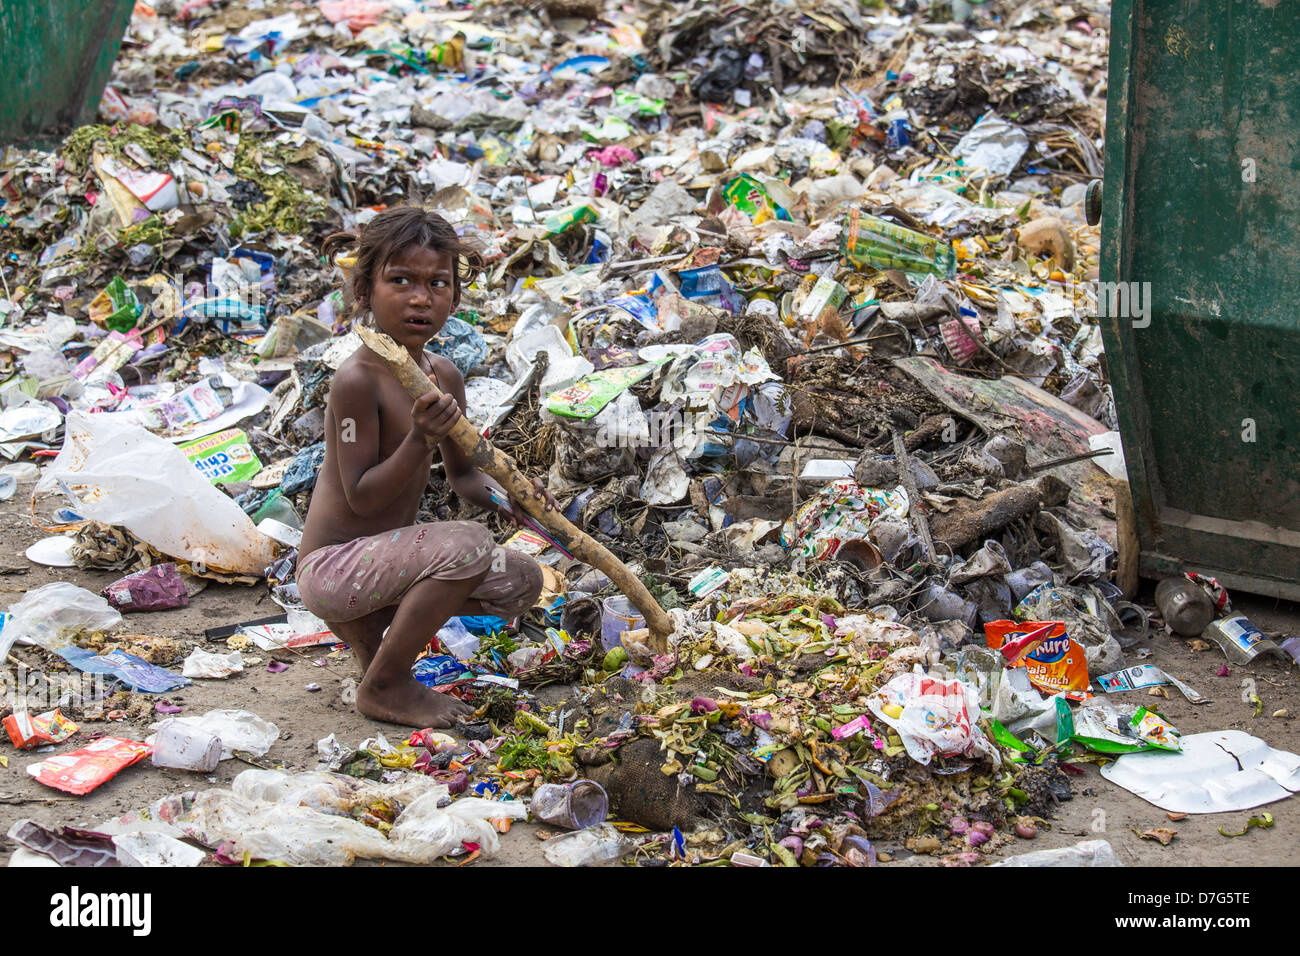 Young girl scavenging for scraps in the garbage, Delhi, India - Stock Image